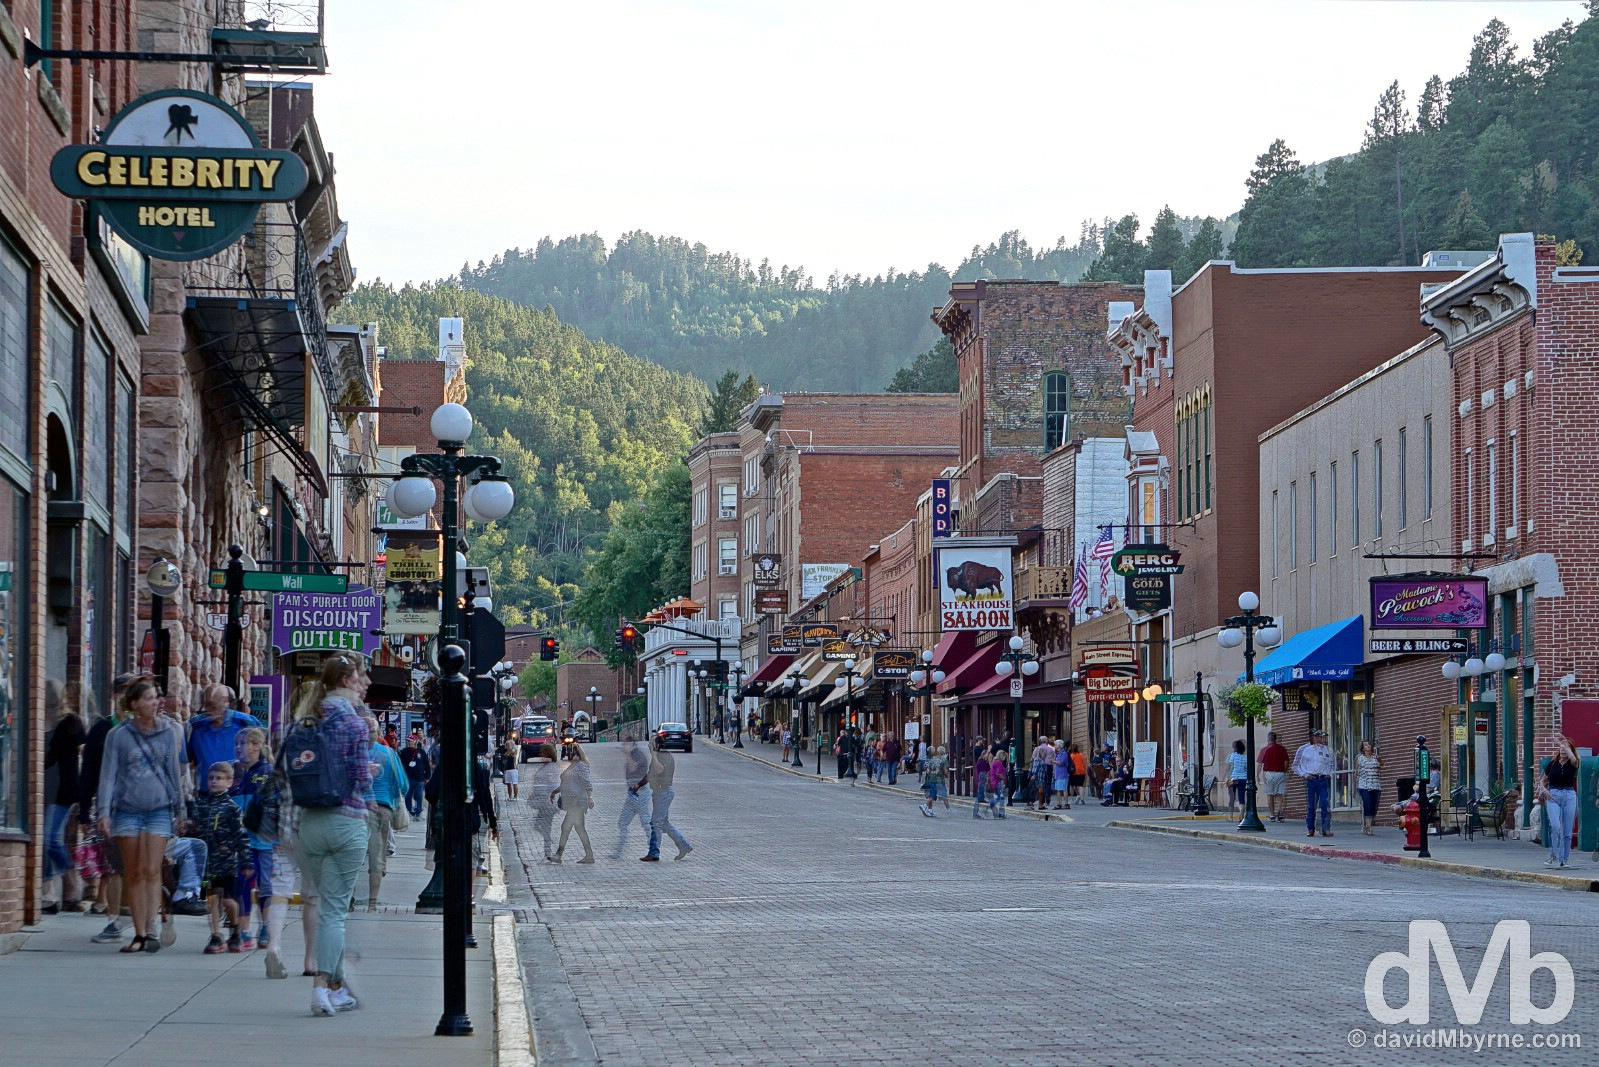 Dusk on Historic main street Deadwood, the Black Hills, South Dakota, USA. September 1, 2016.